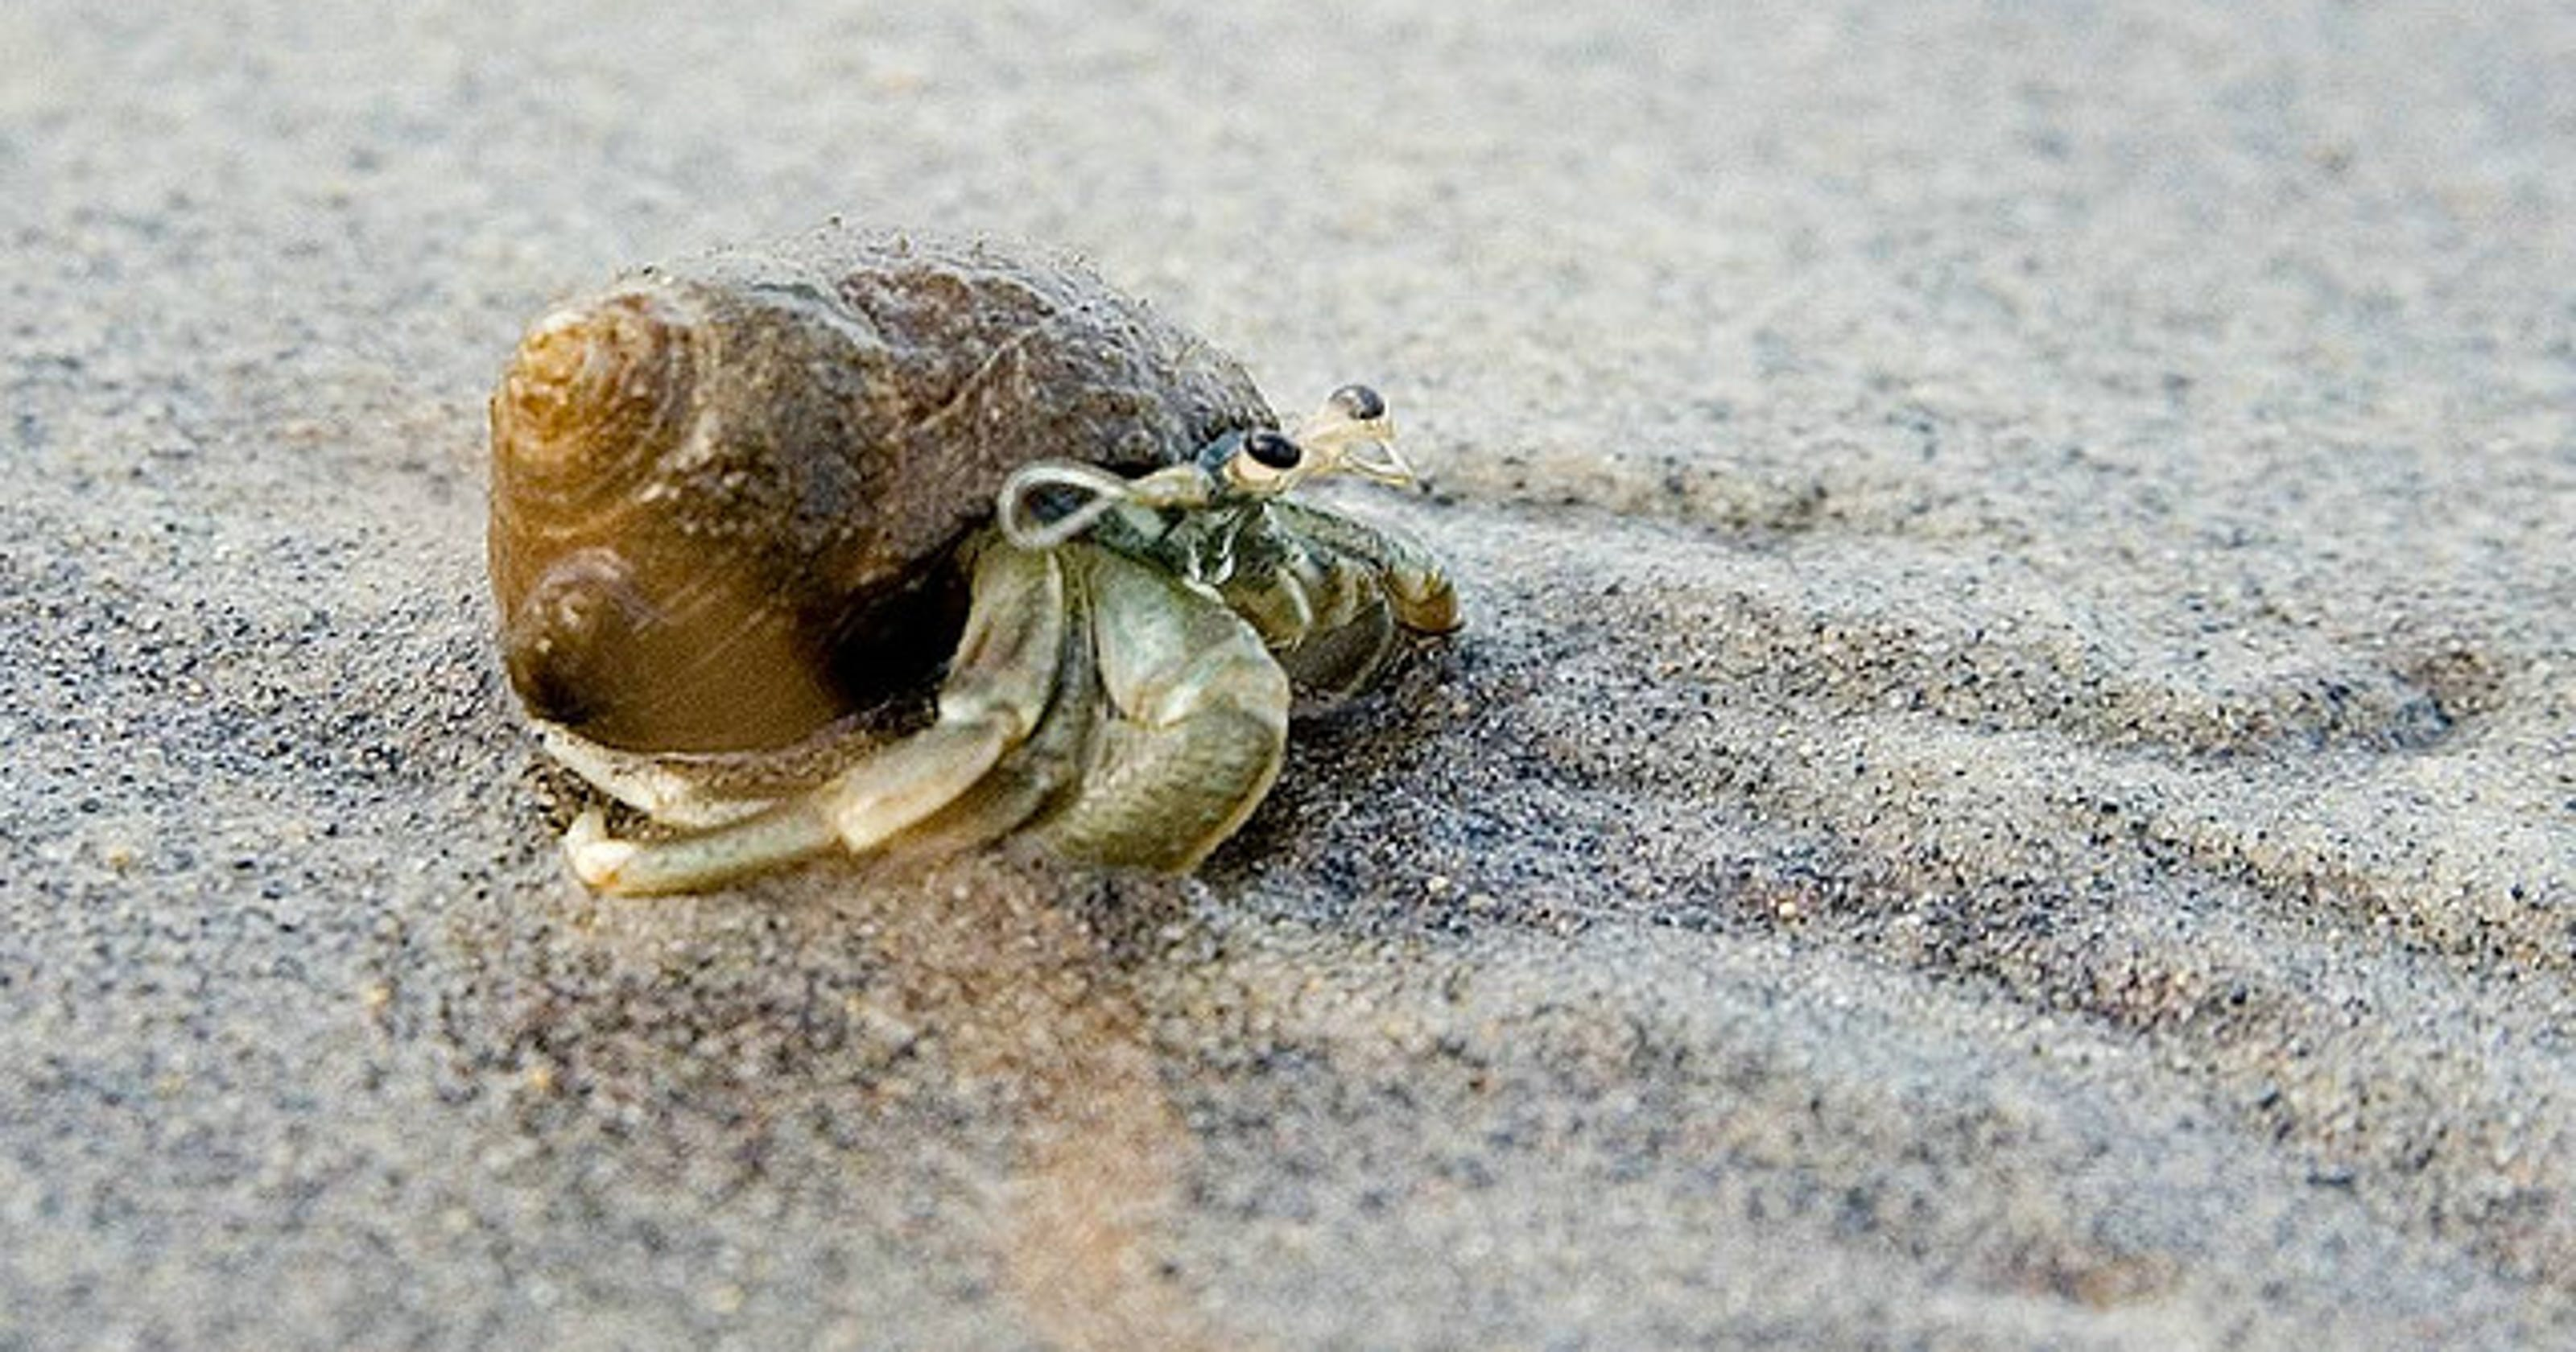 creatures hermit crabs not coming out of their shells